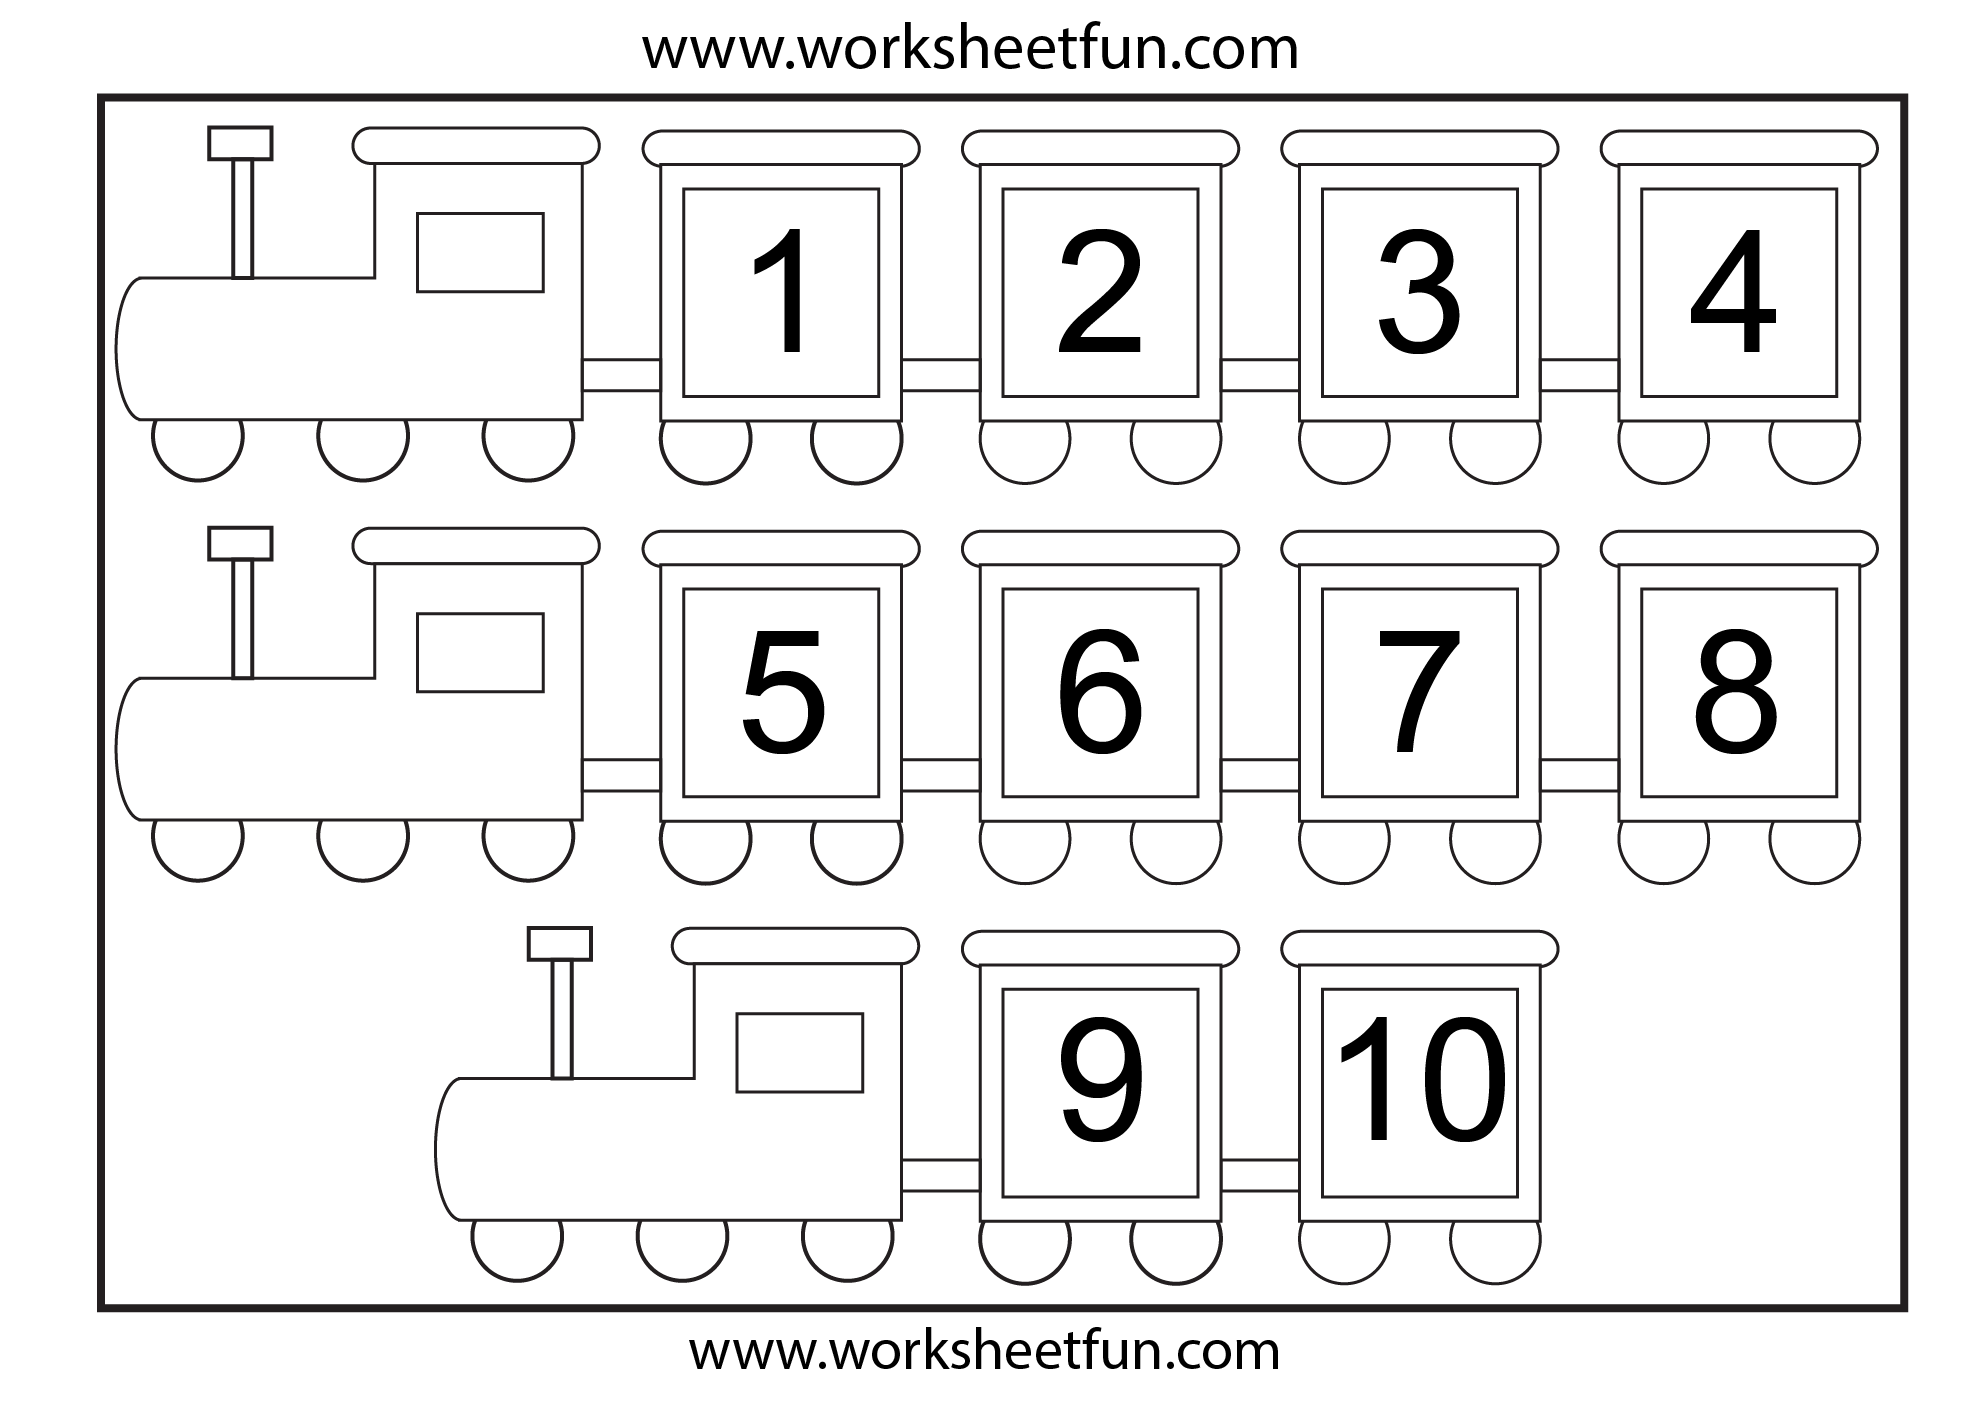 Printables Number Images 1-10 numbers 1 10 worksheets printable worksheet early childhood writing myteachingstation com